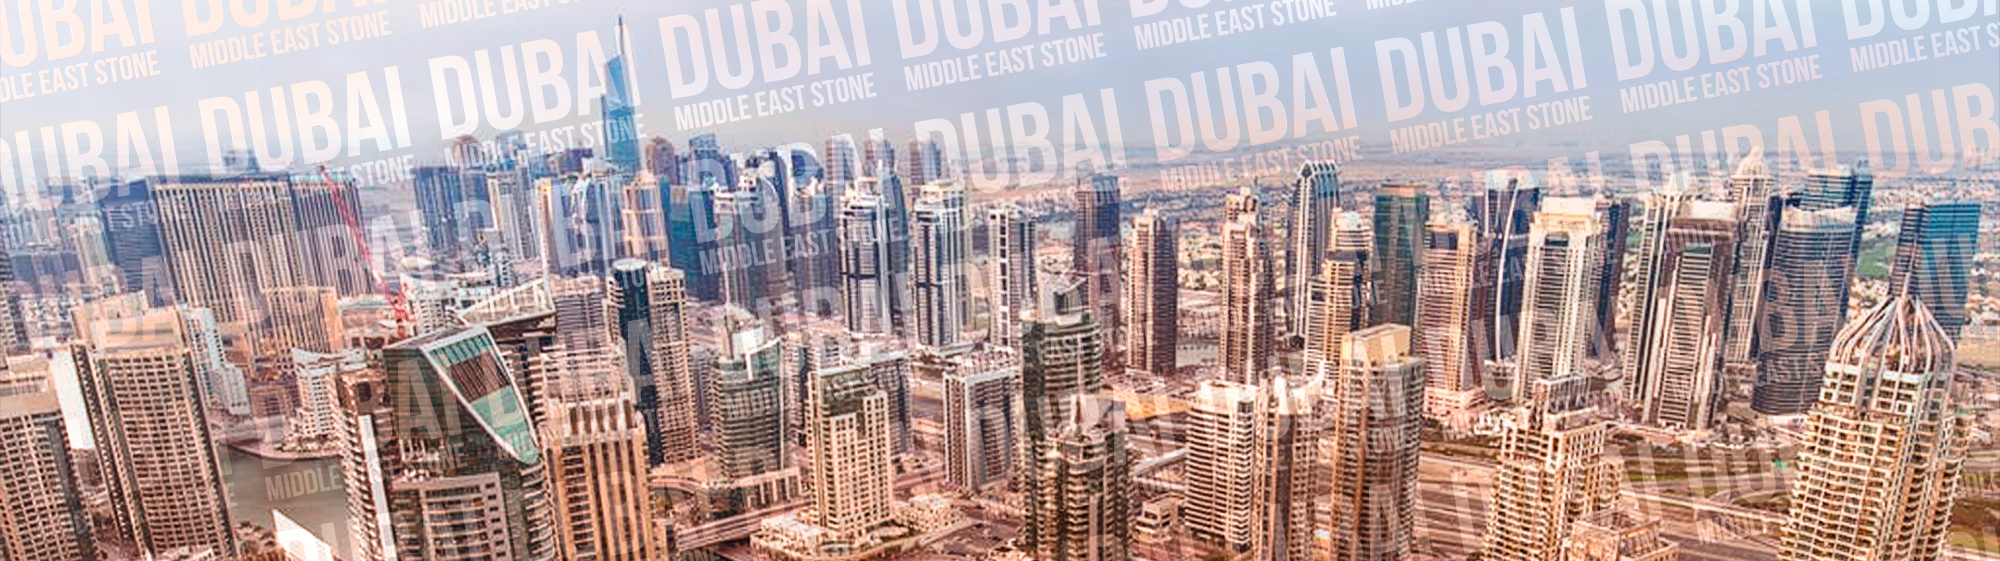 Faber at Middle East Stone in DUBAI